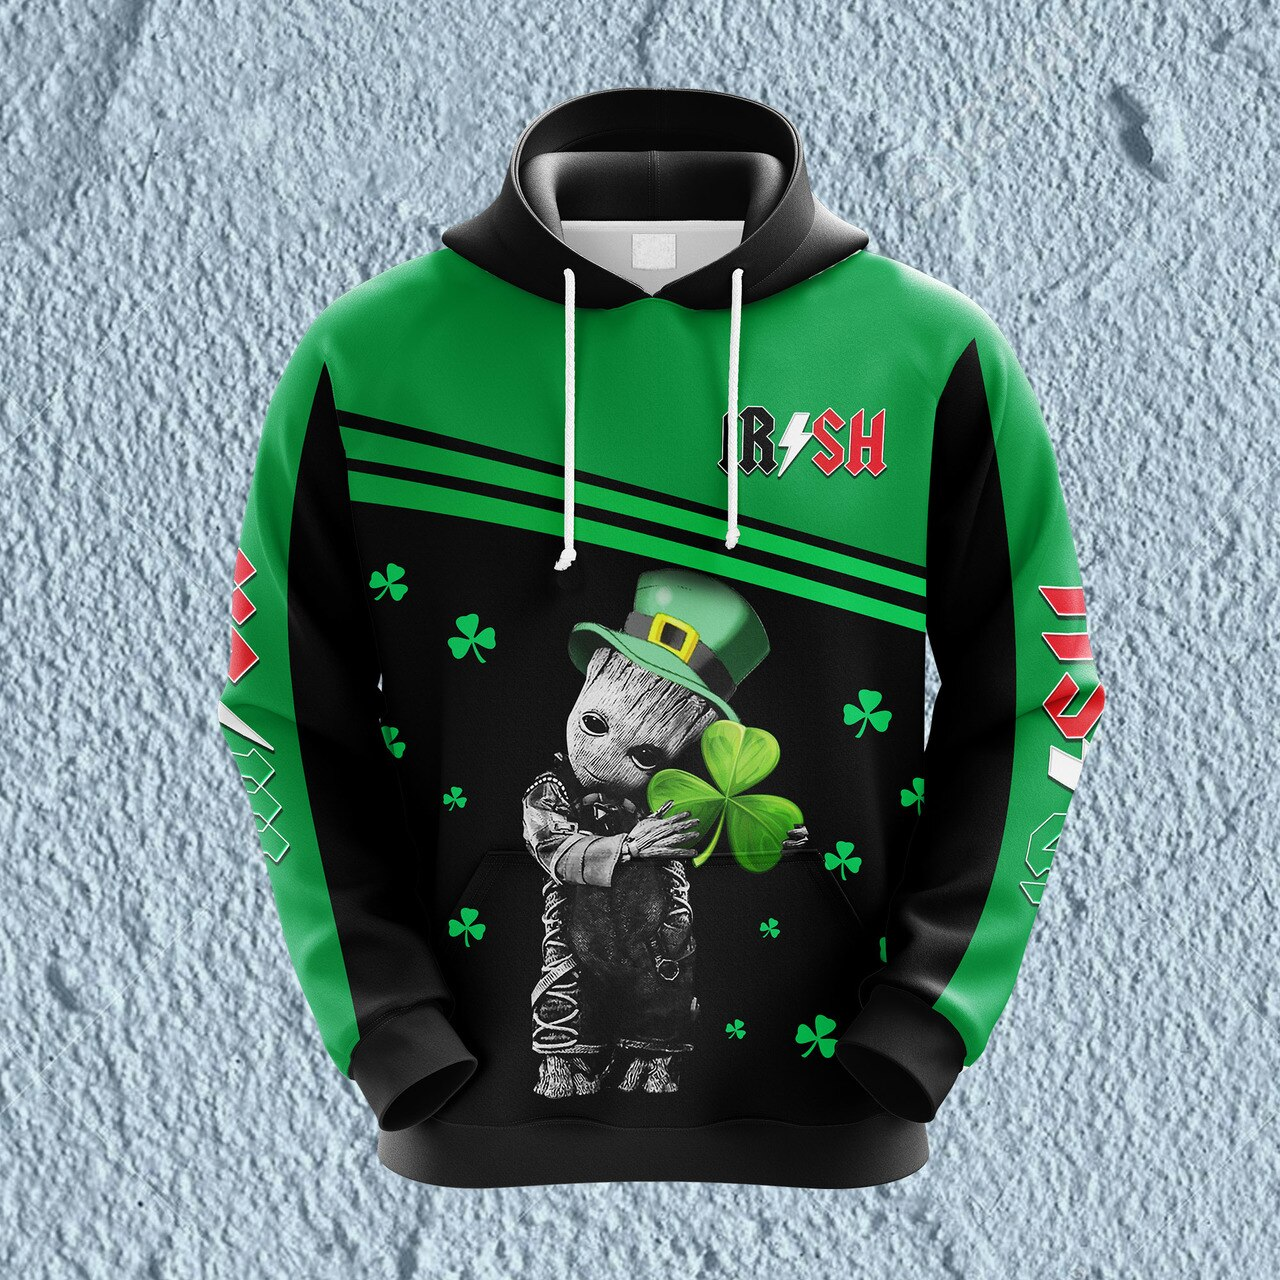 Groot hold shamrock saint patrick's day full printing hoodie